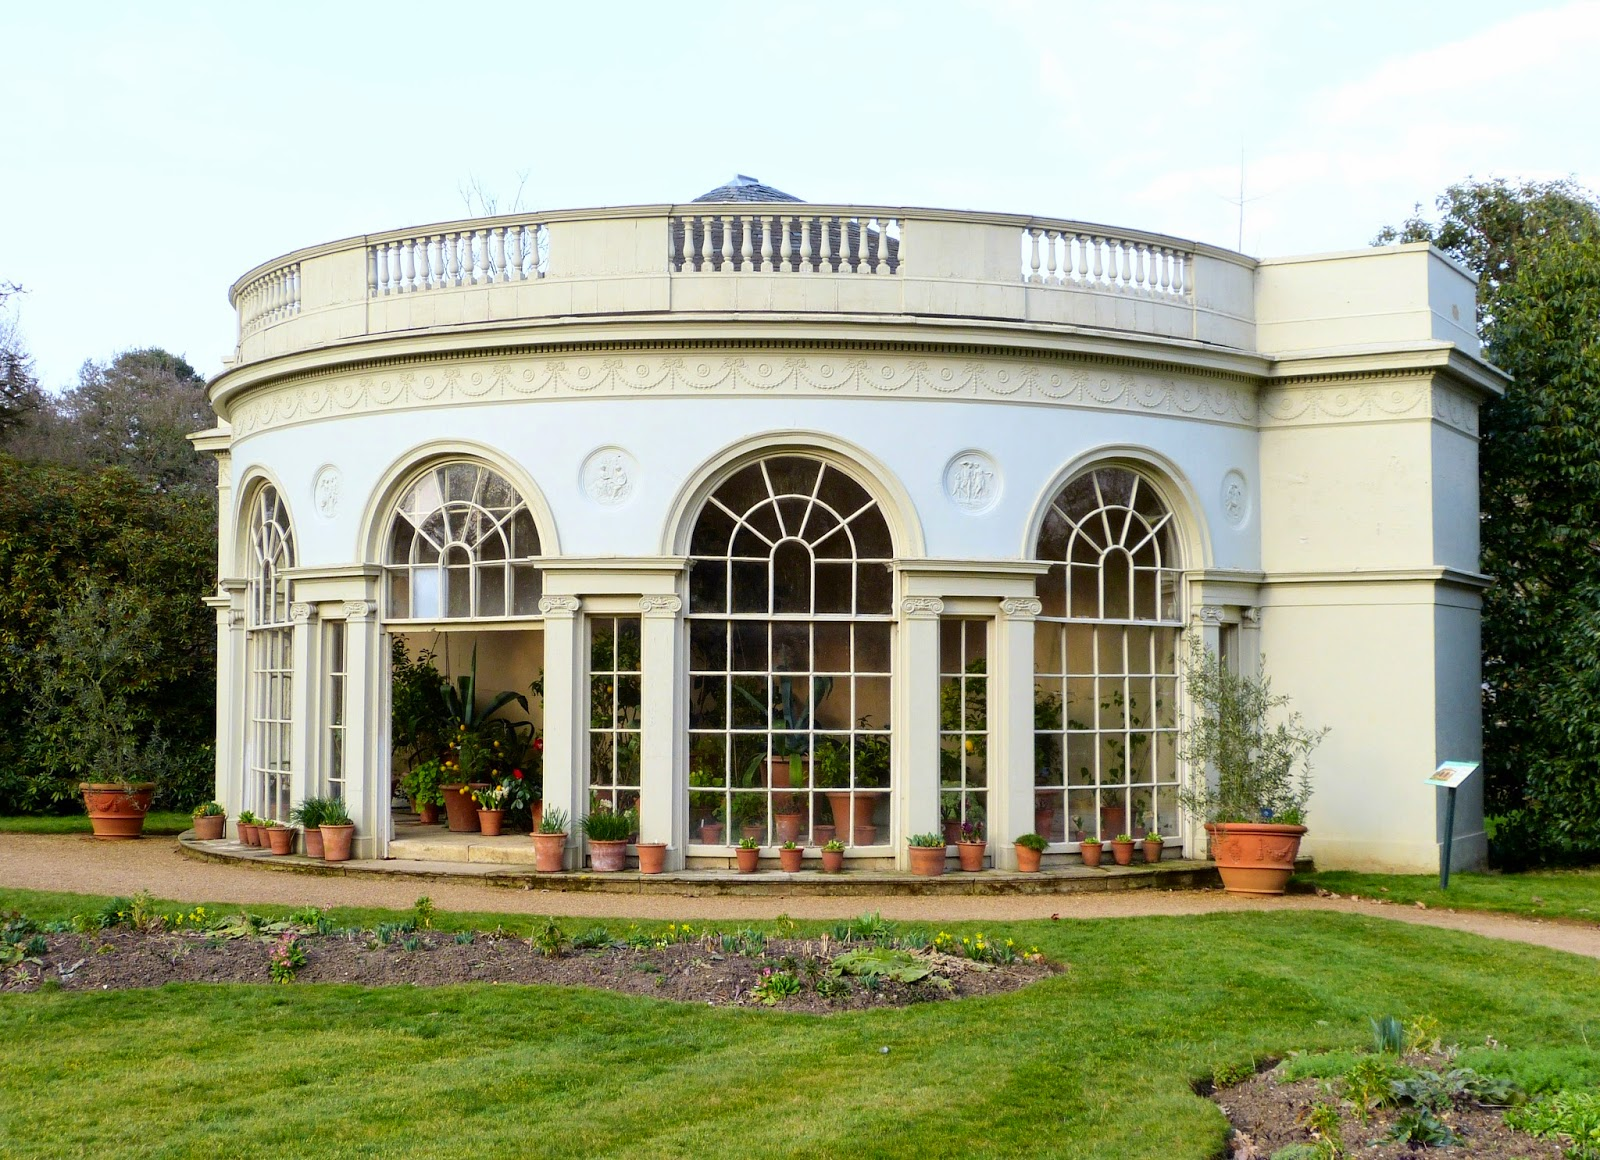 The Garden Room in the gardens at Osterley